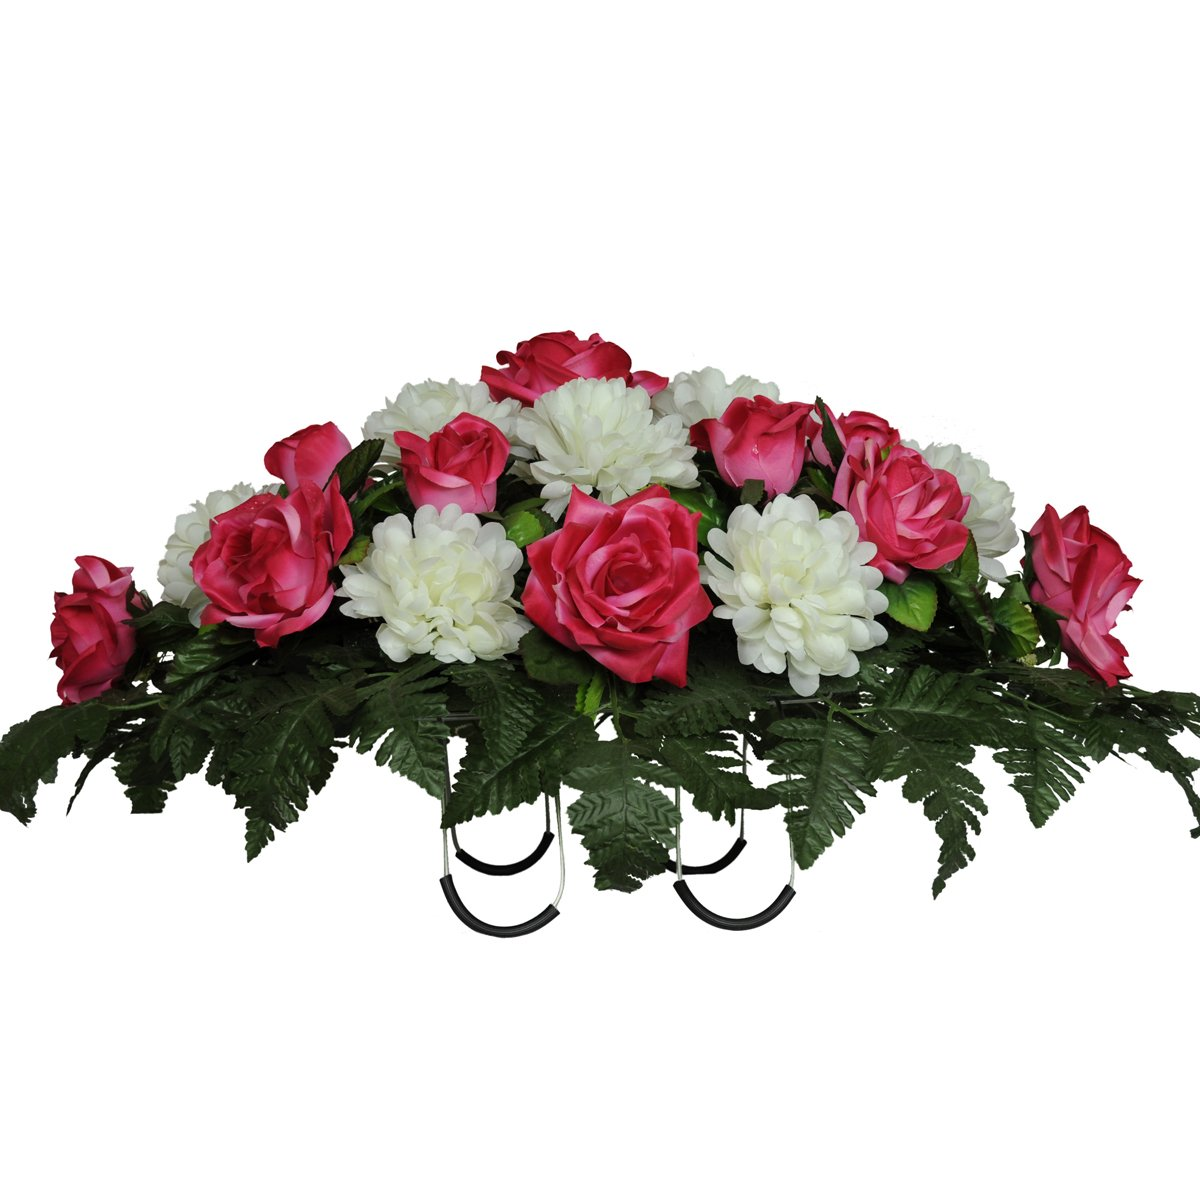 Amazon Beauty Pink Rose And White Mums Silk Saddle Arrangement